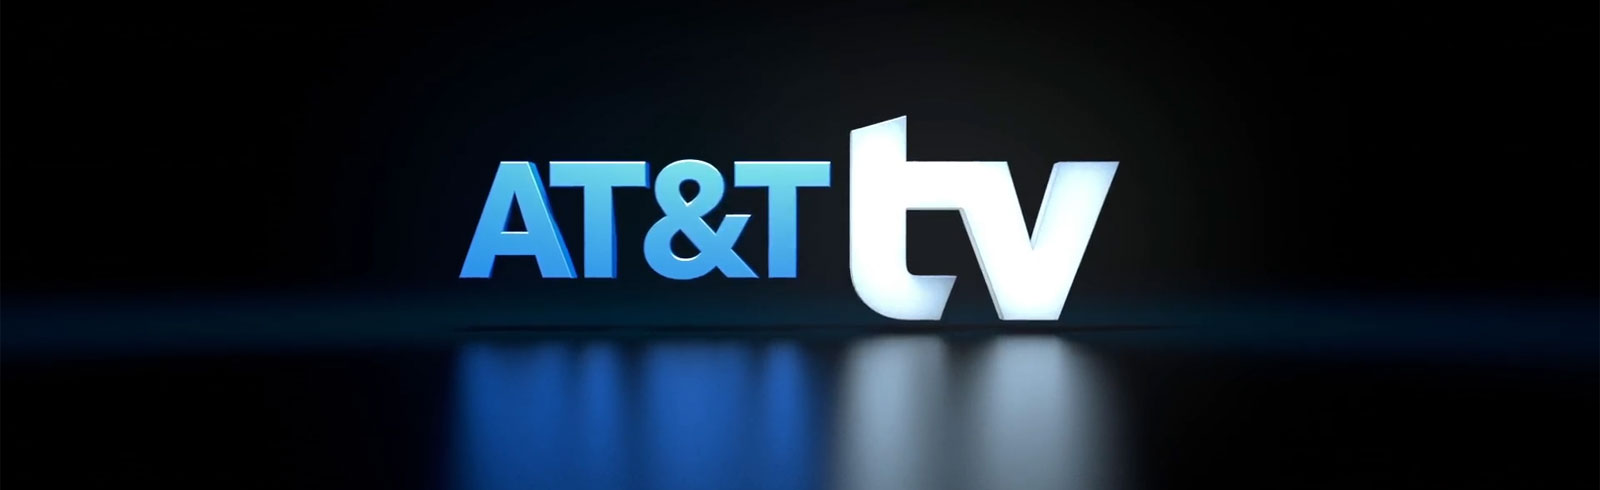 AT&T TV launches nationwide as of today